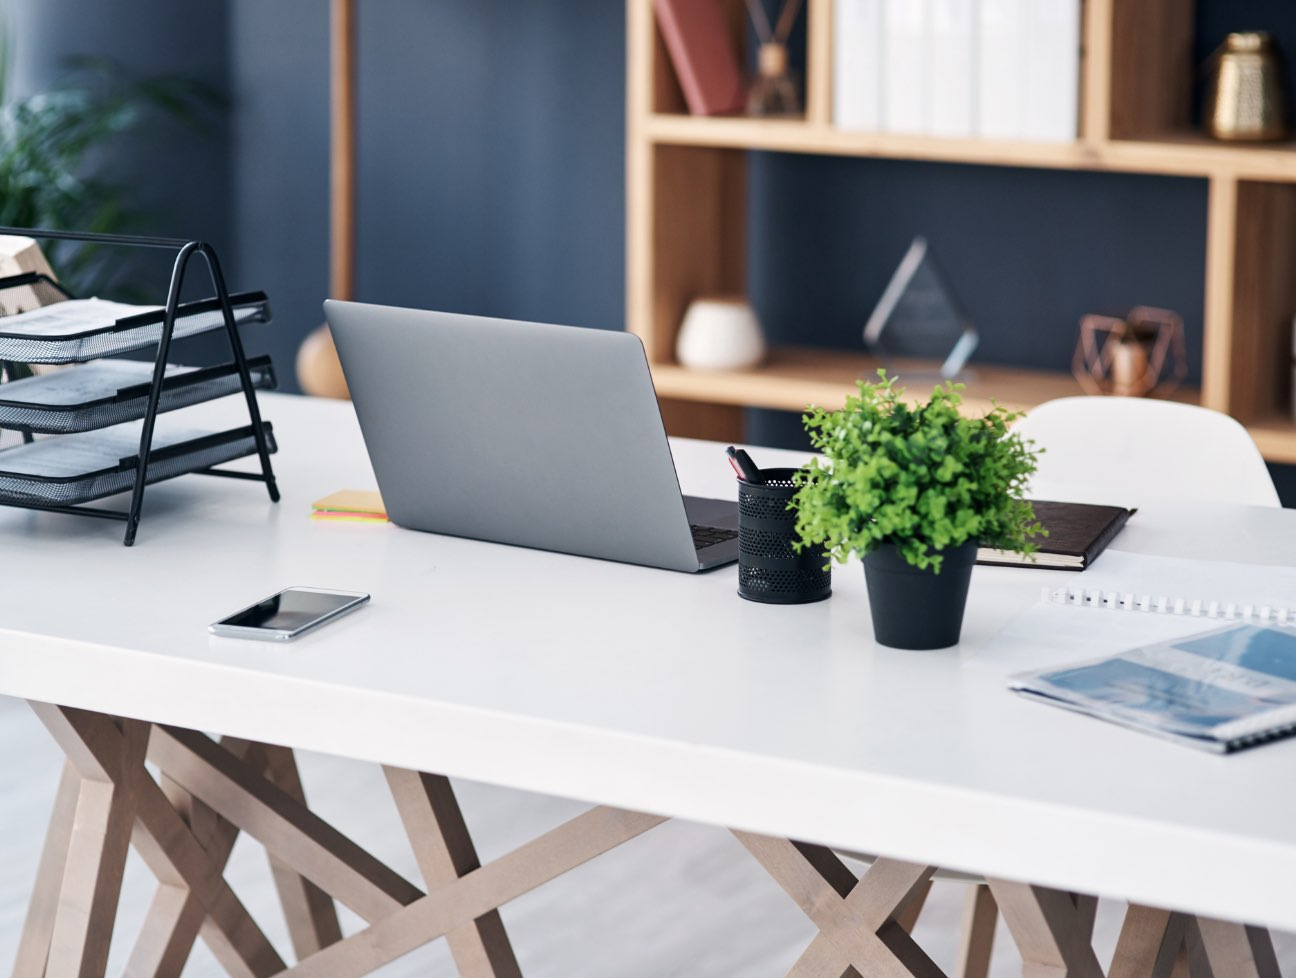 Business desk with laptop and plant on top